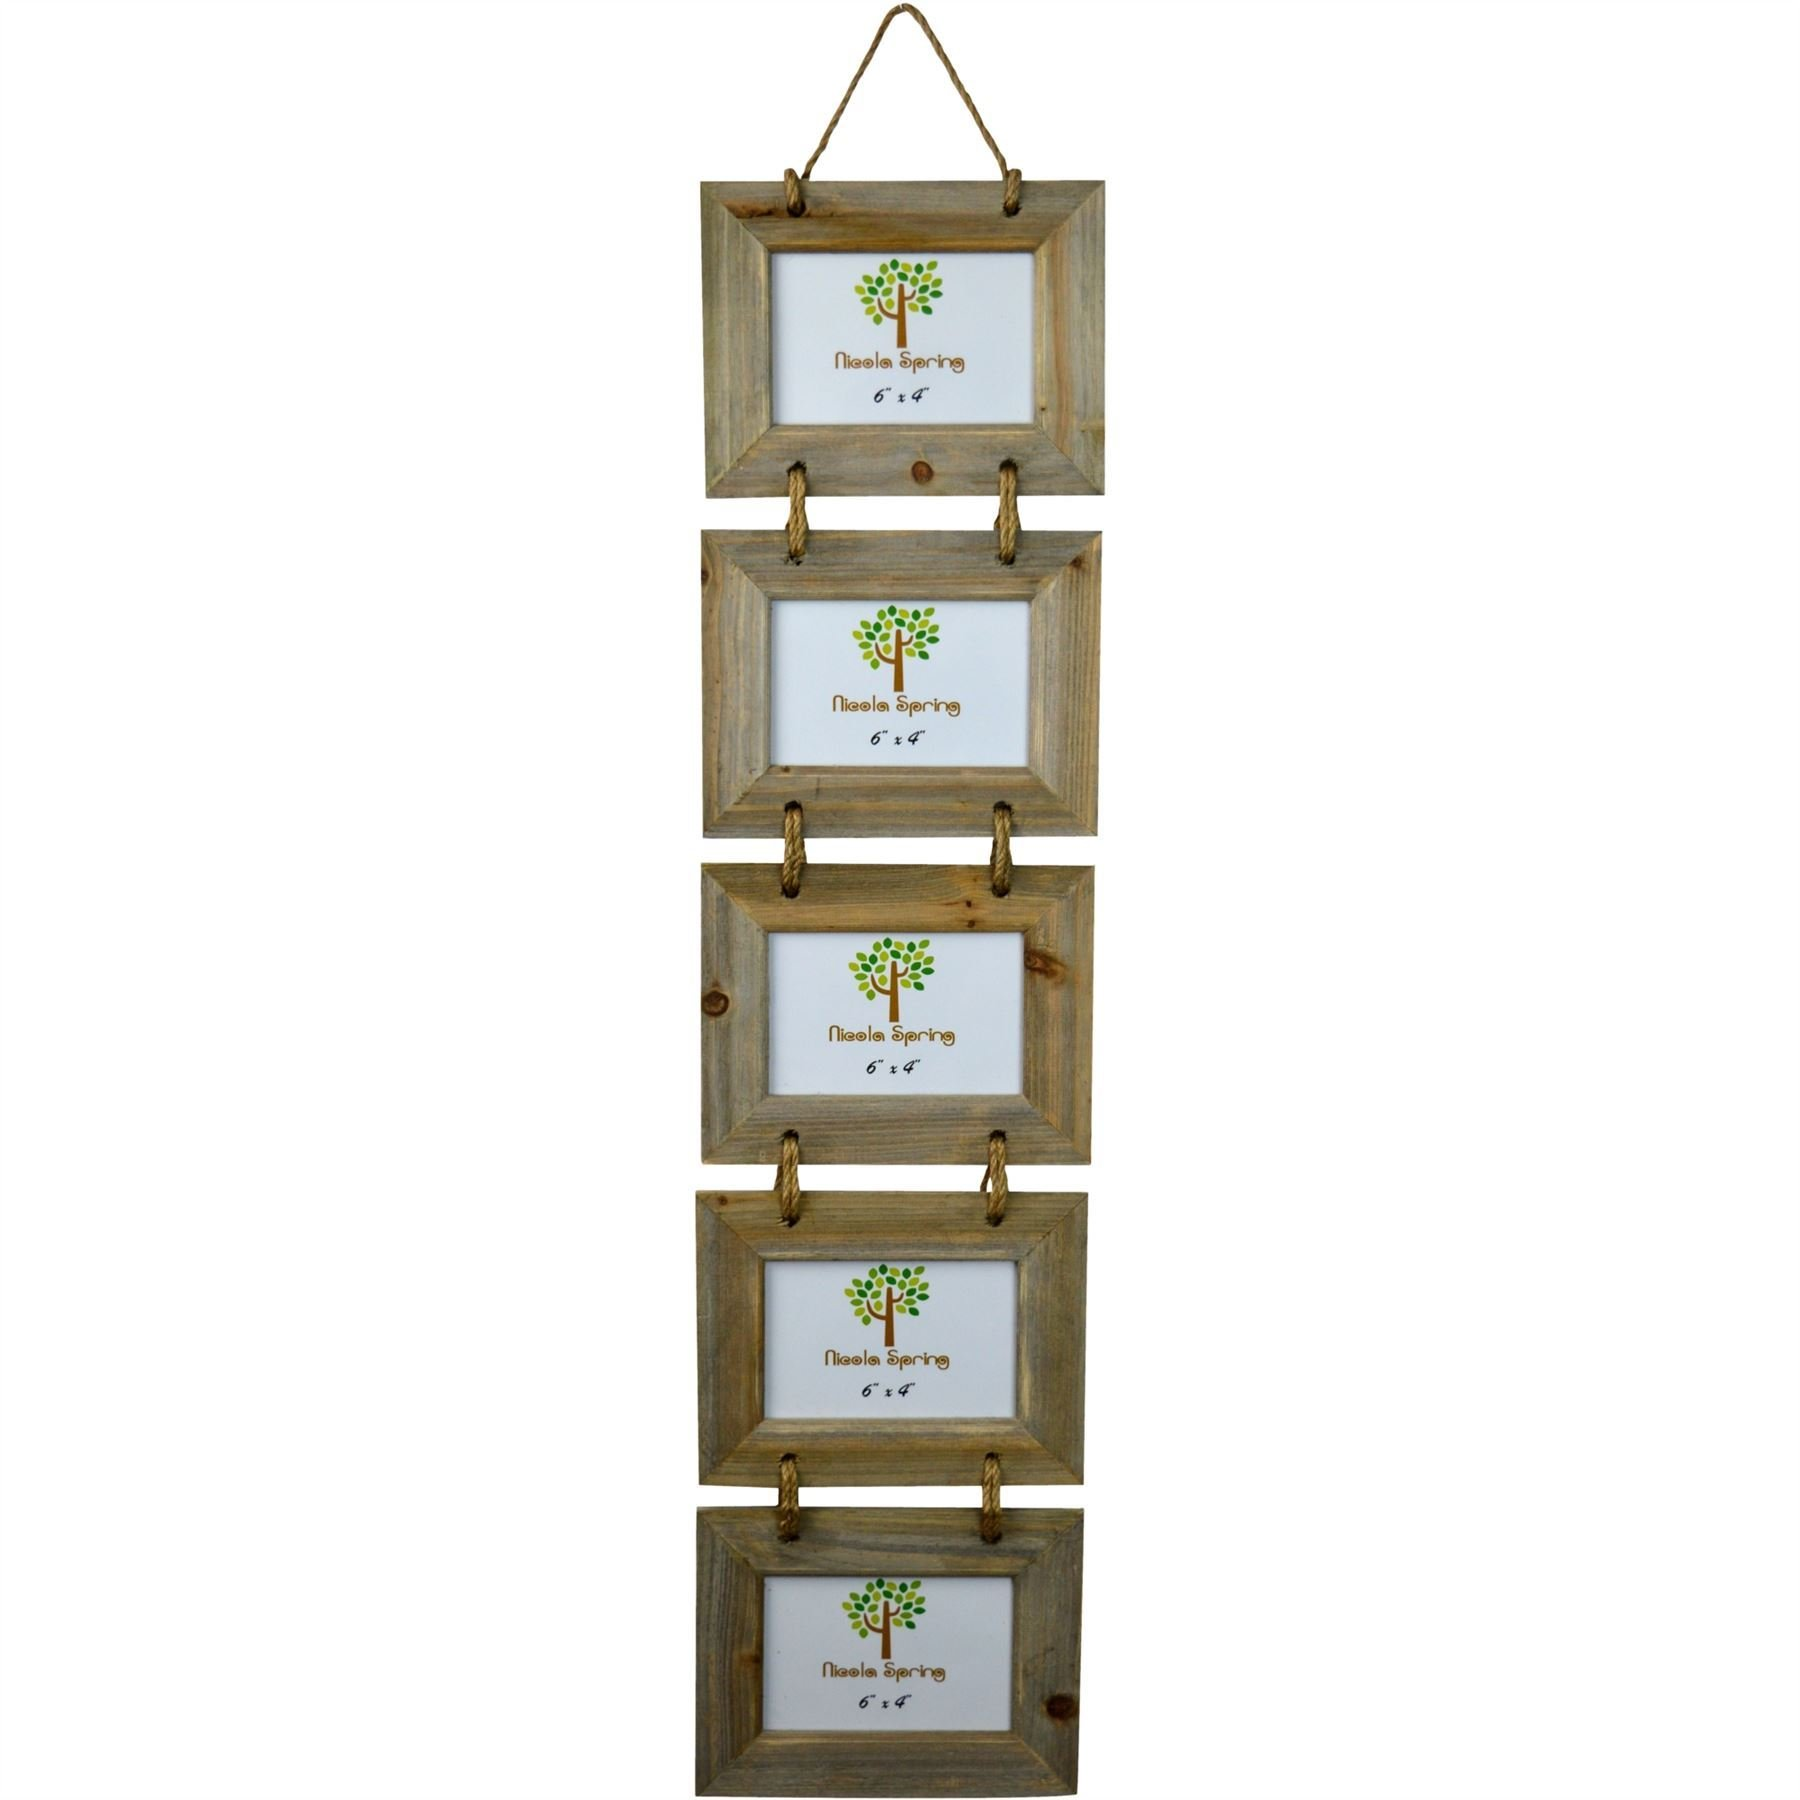 Five Hanging Rustic Wood Photo Frames by Nicola Spring